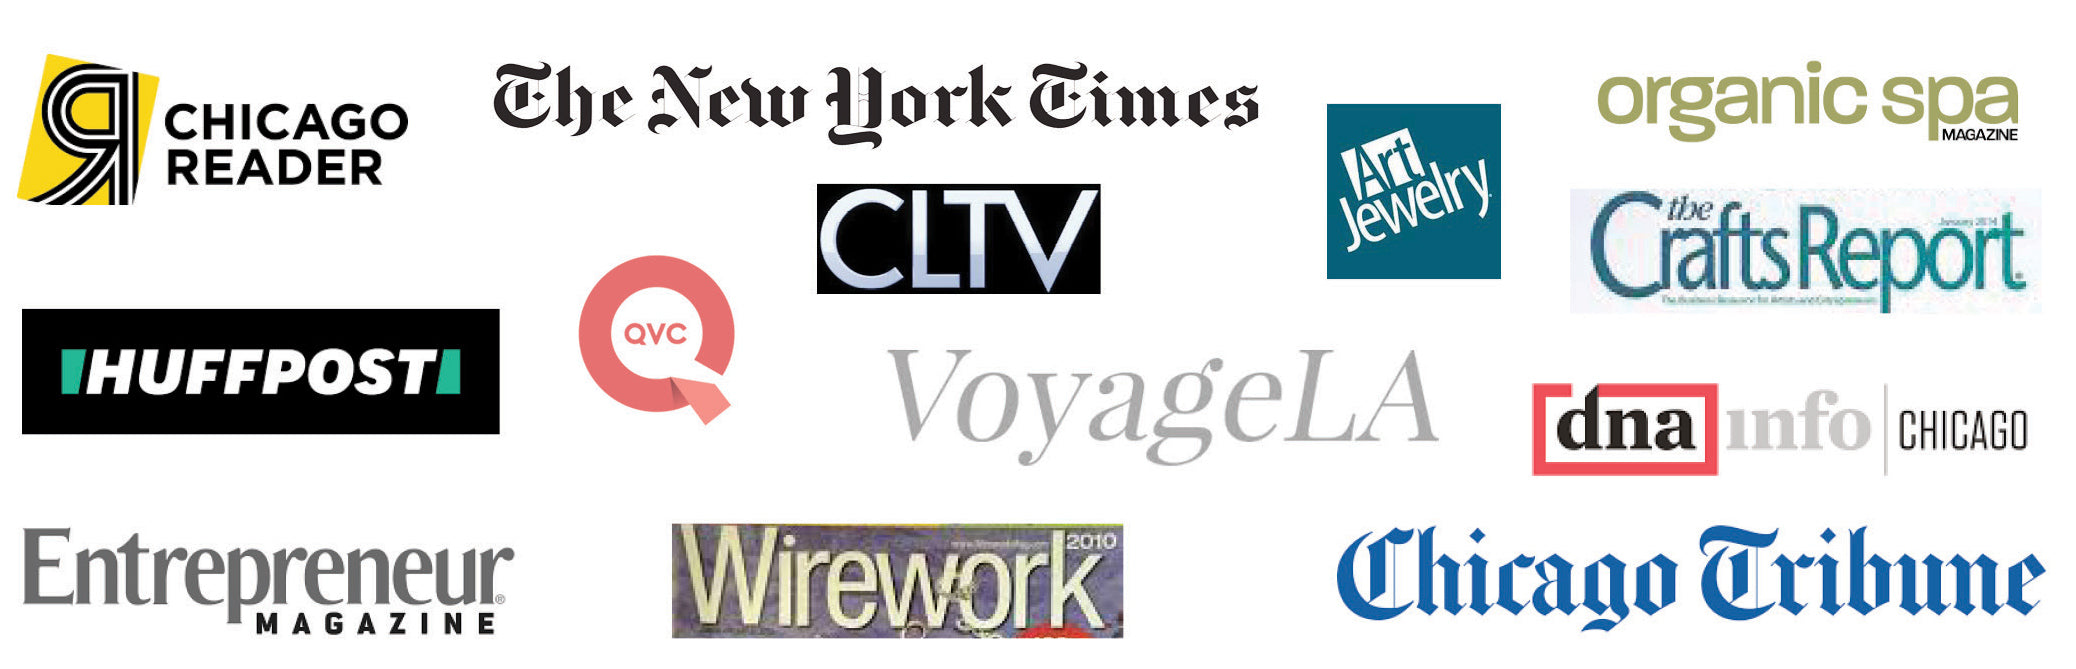 logos for media in which RMJ has appeared, including Chicago Reader, QVC, New York Times and Entrepreneur Magazine